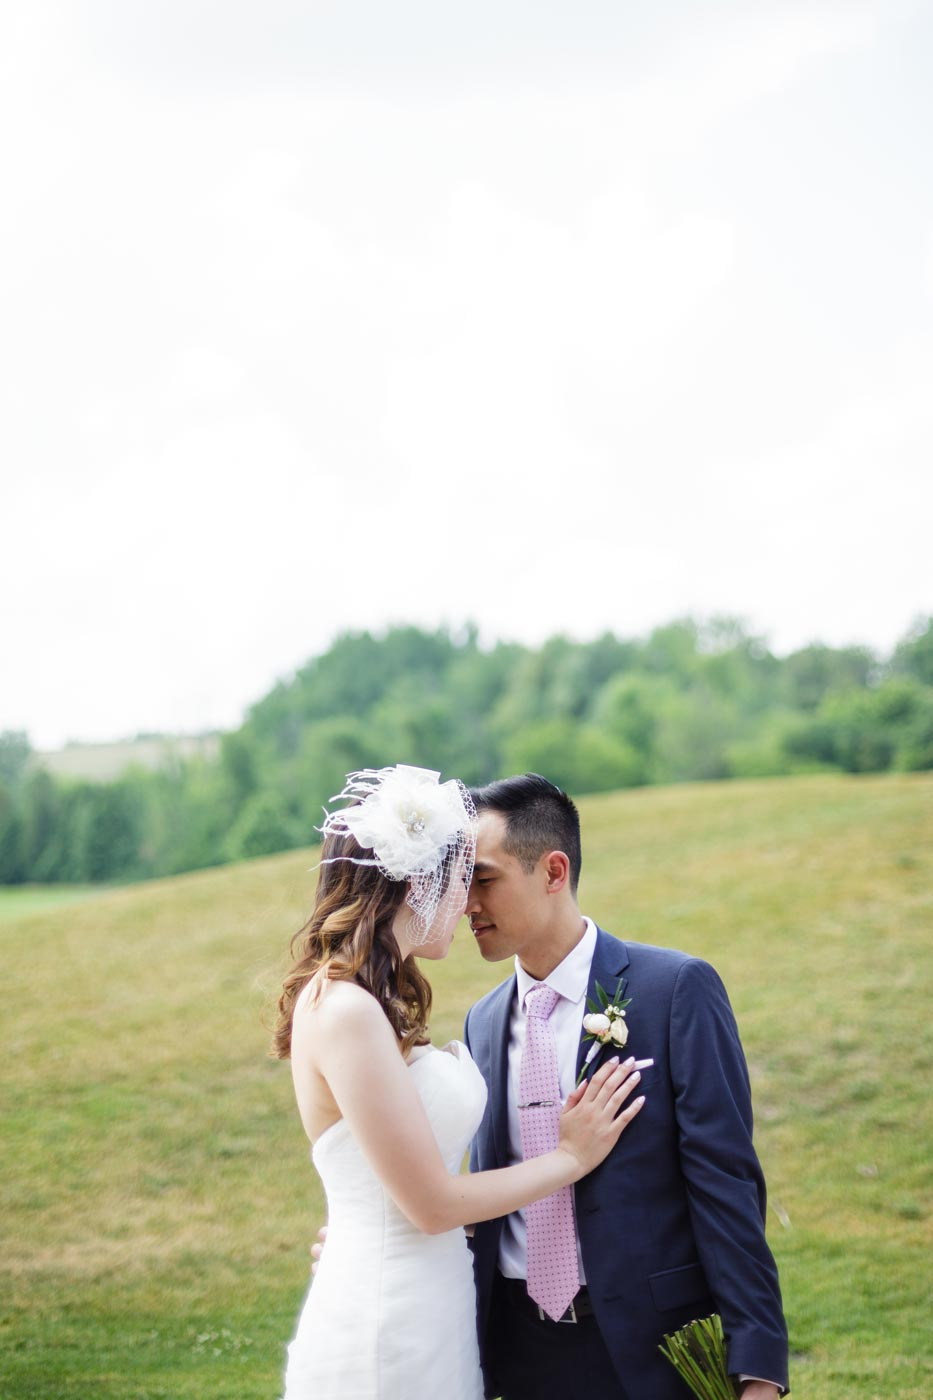 jessicahoang-savi-toronto-wedding-eagles-nest-22